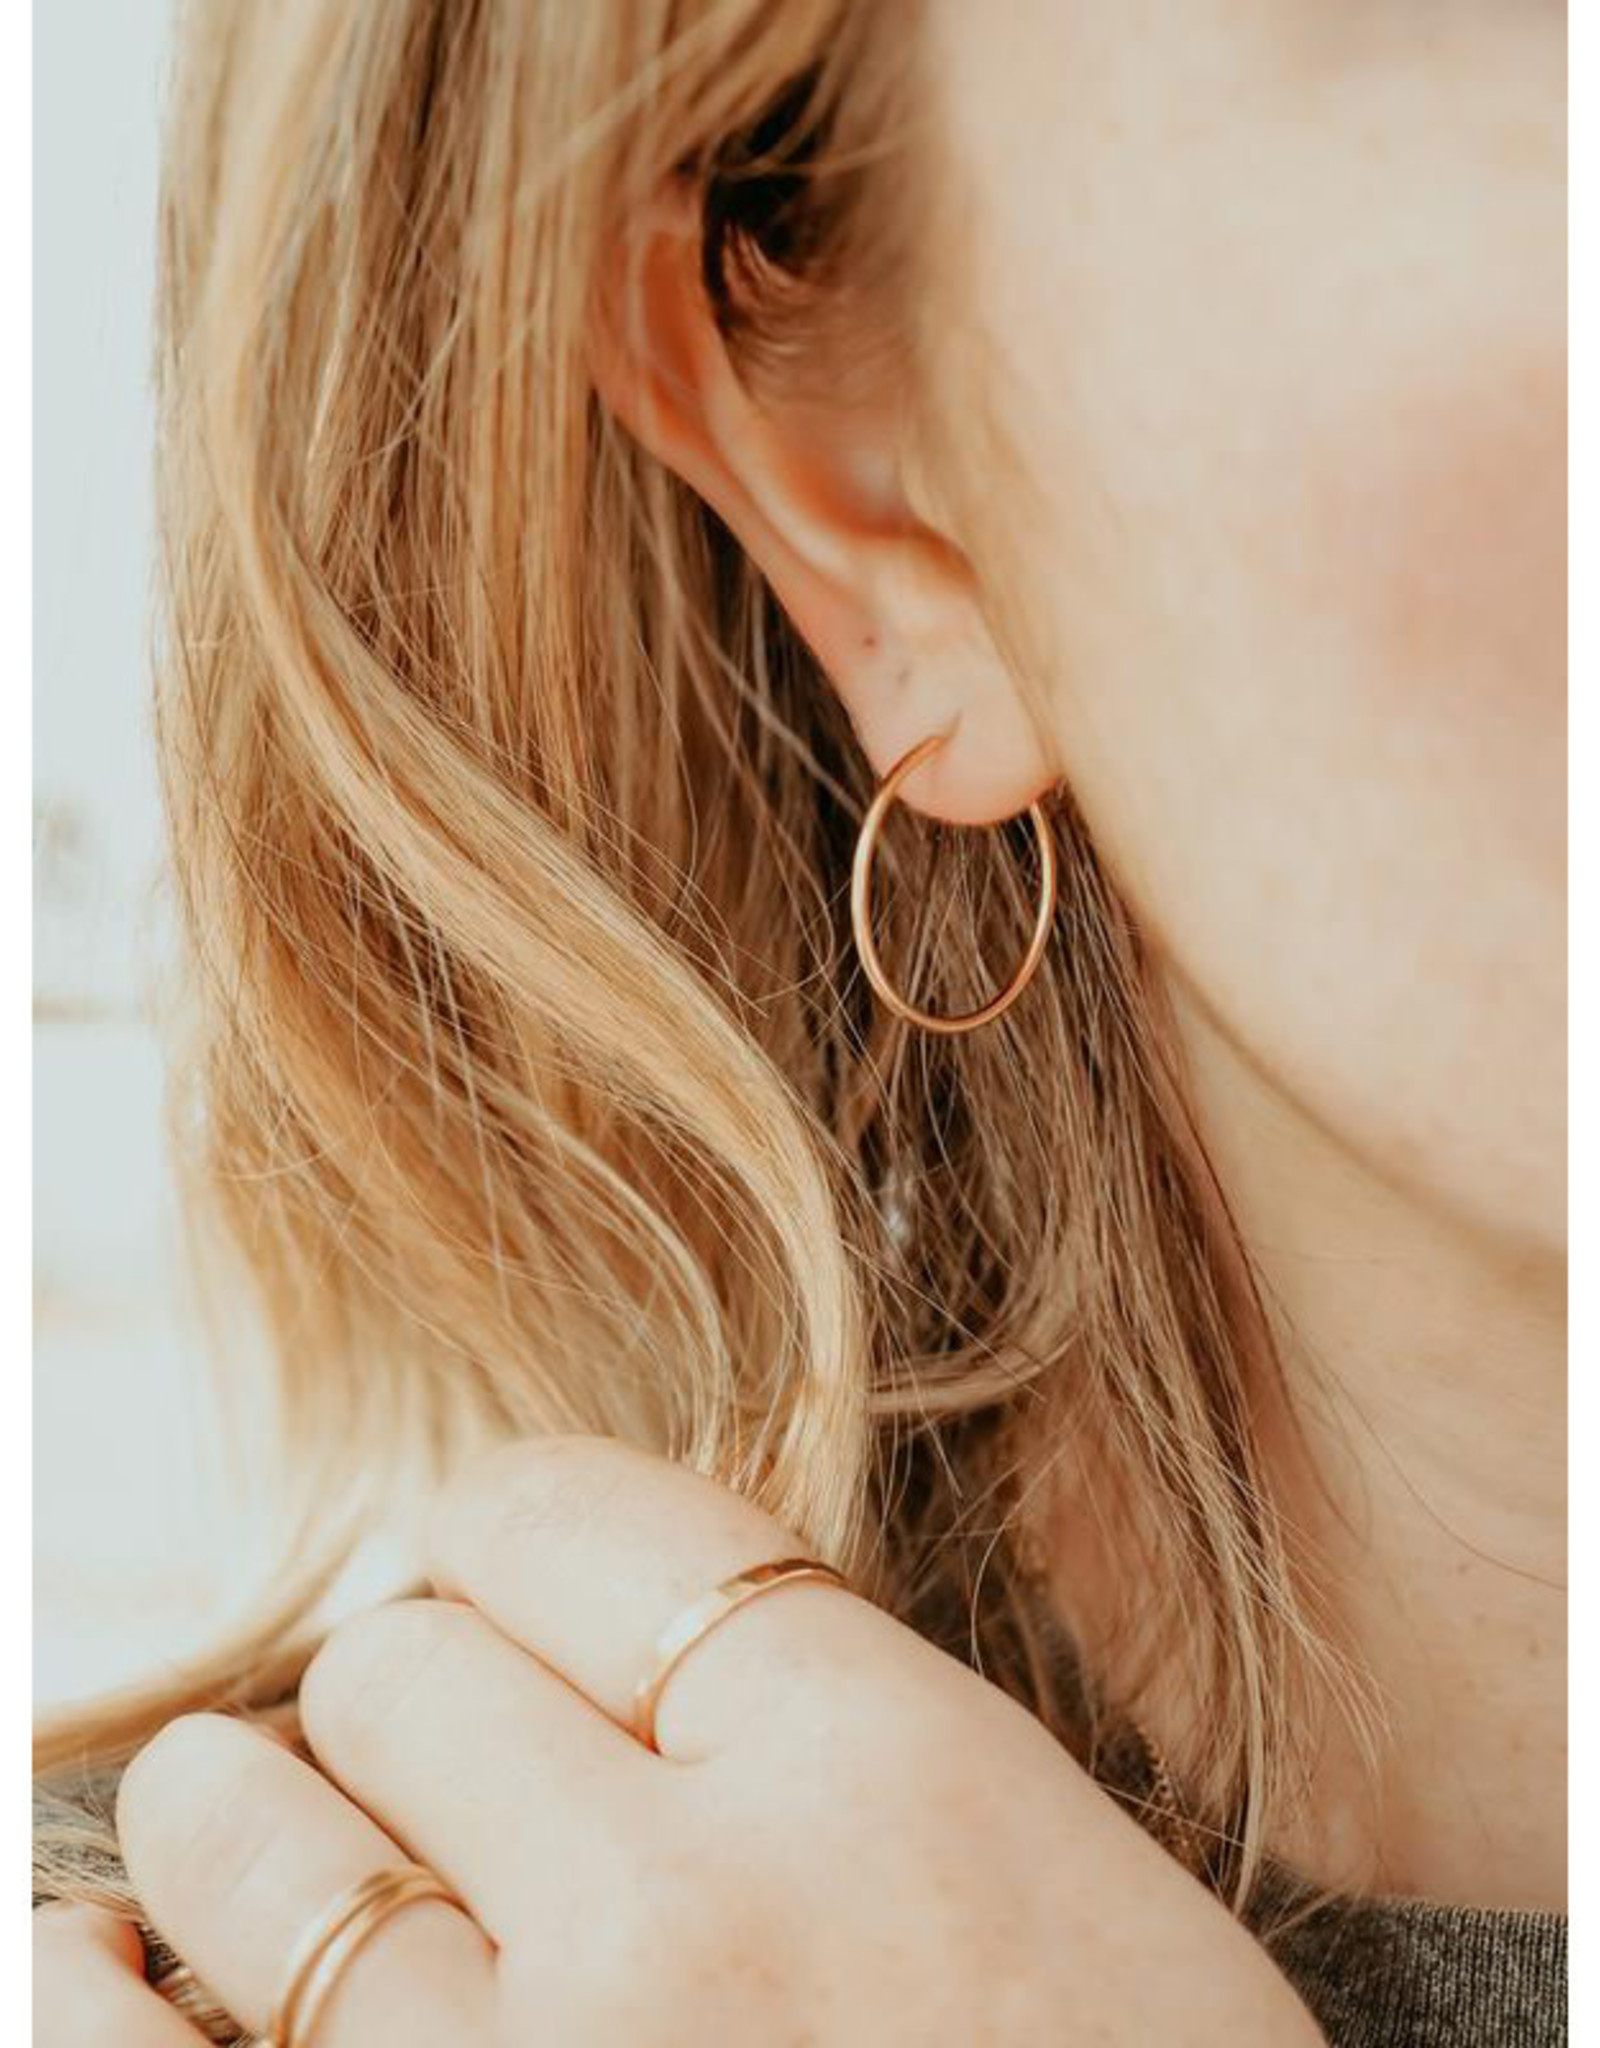 Hart + Stone Gold Ibex Hoops - Large